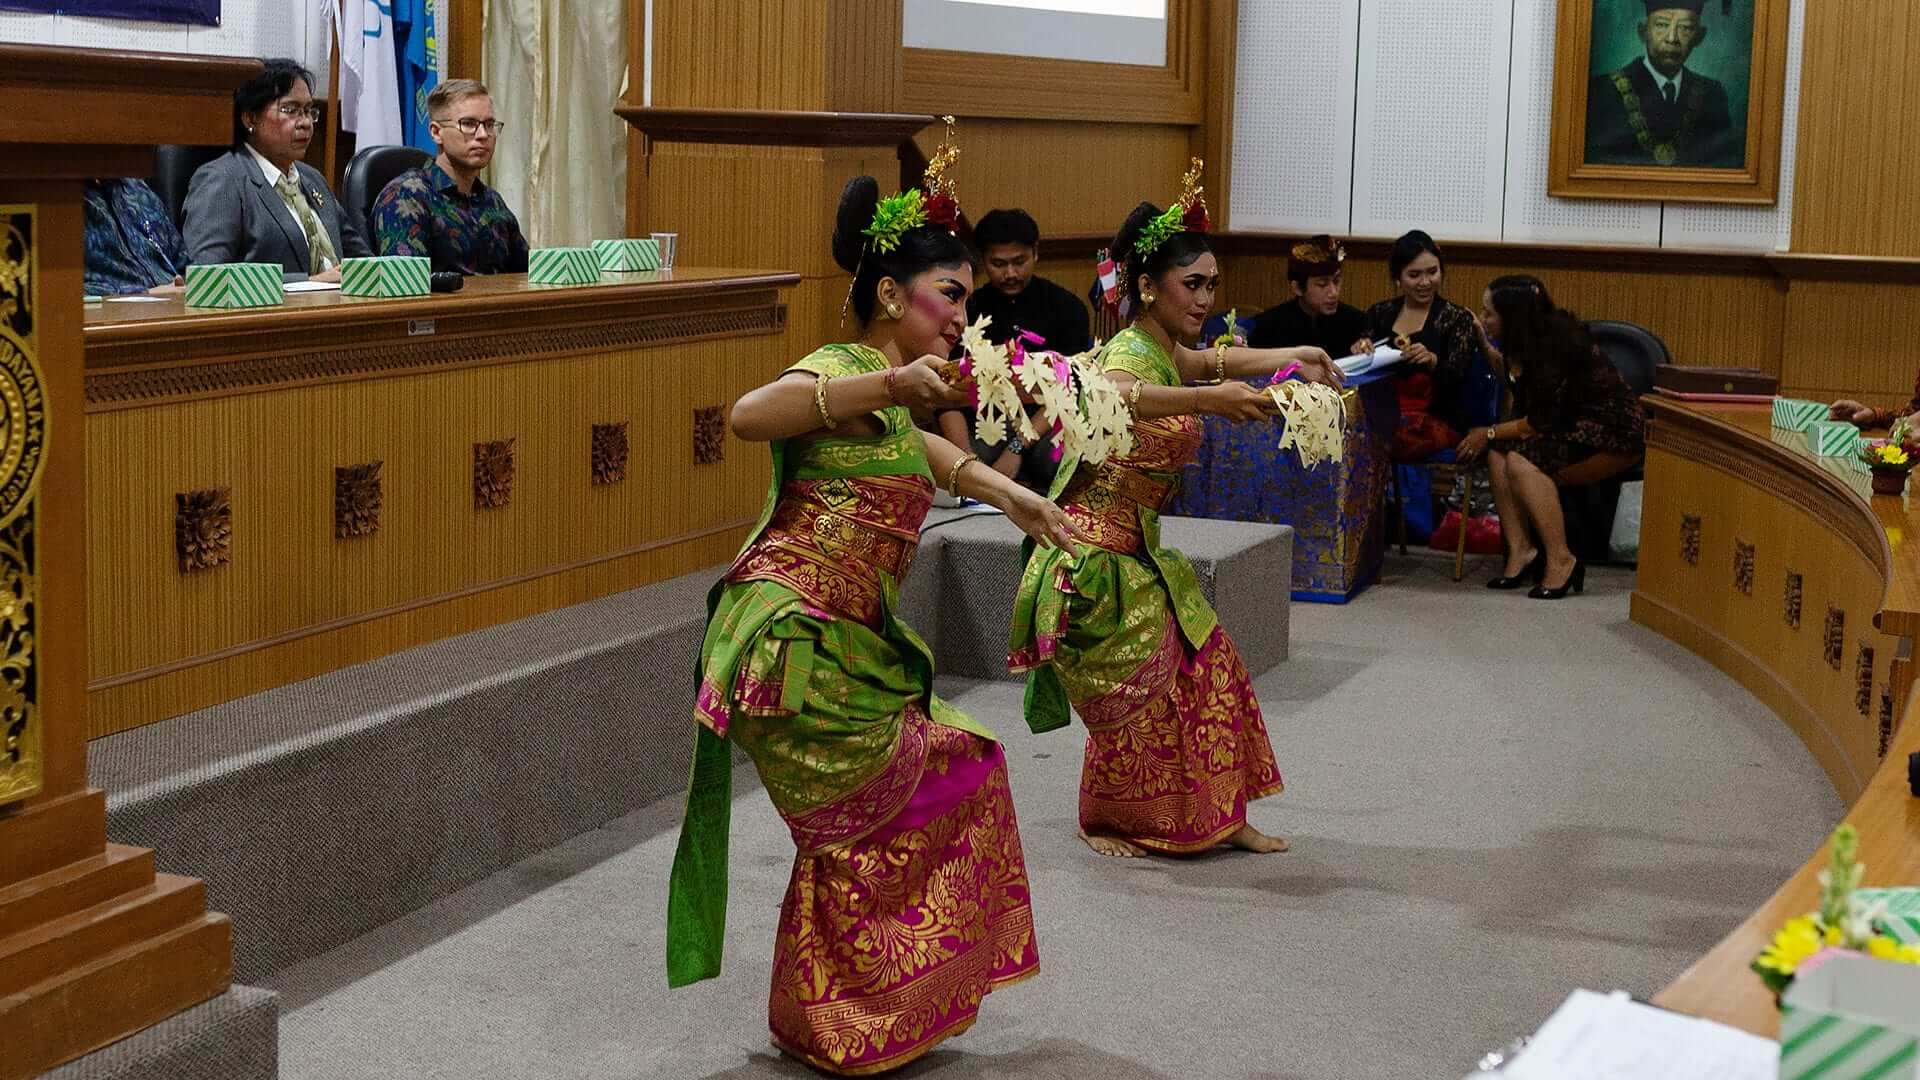 Two girls dressed in colorful costumes dancing traditional dance